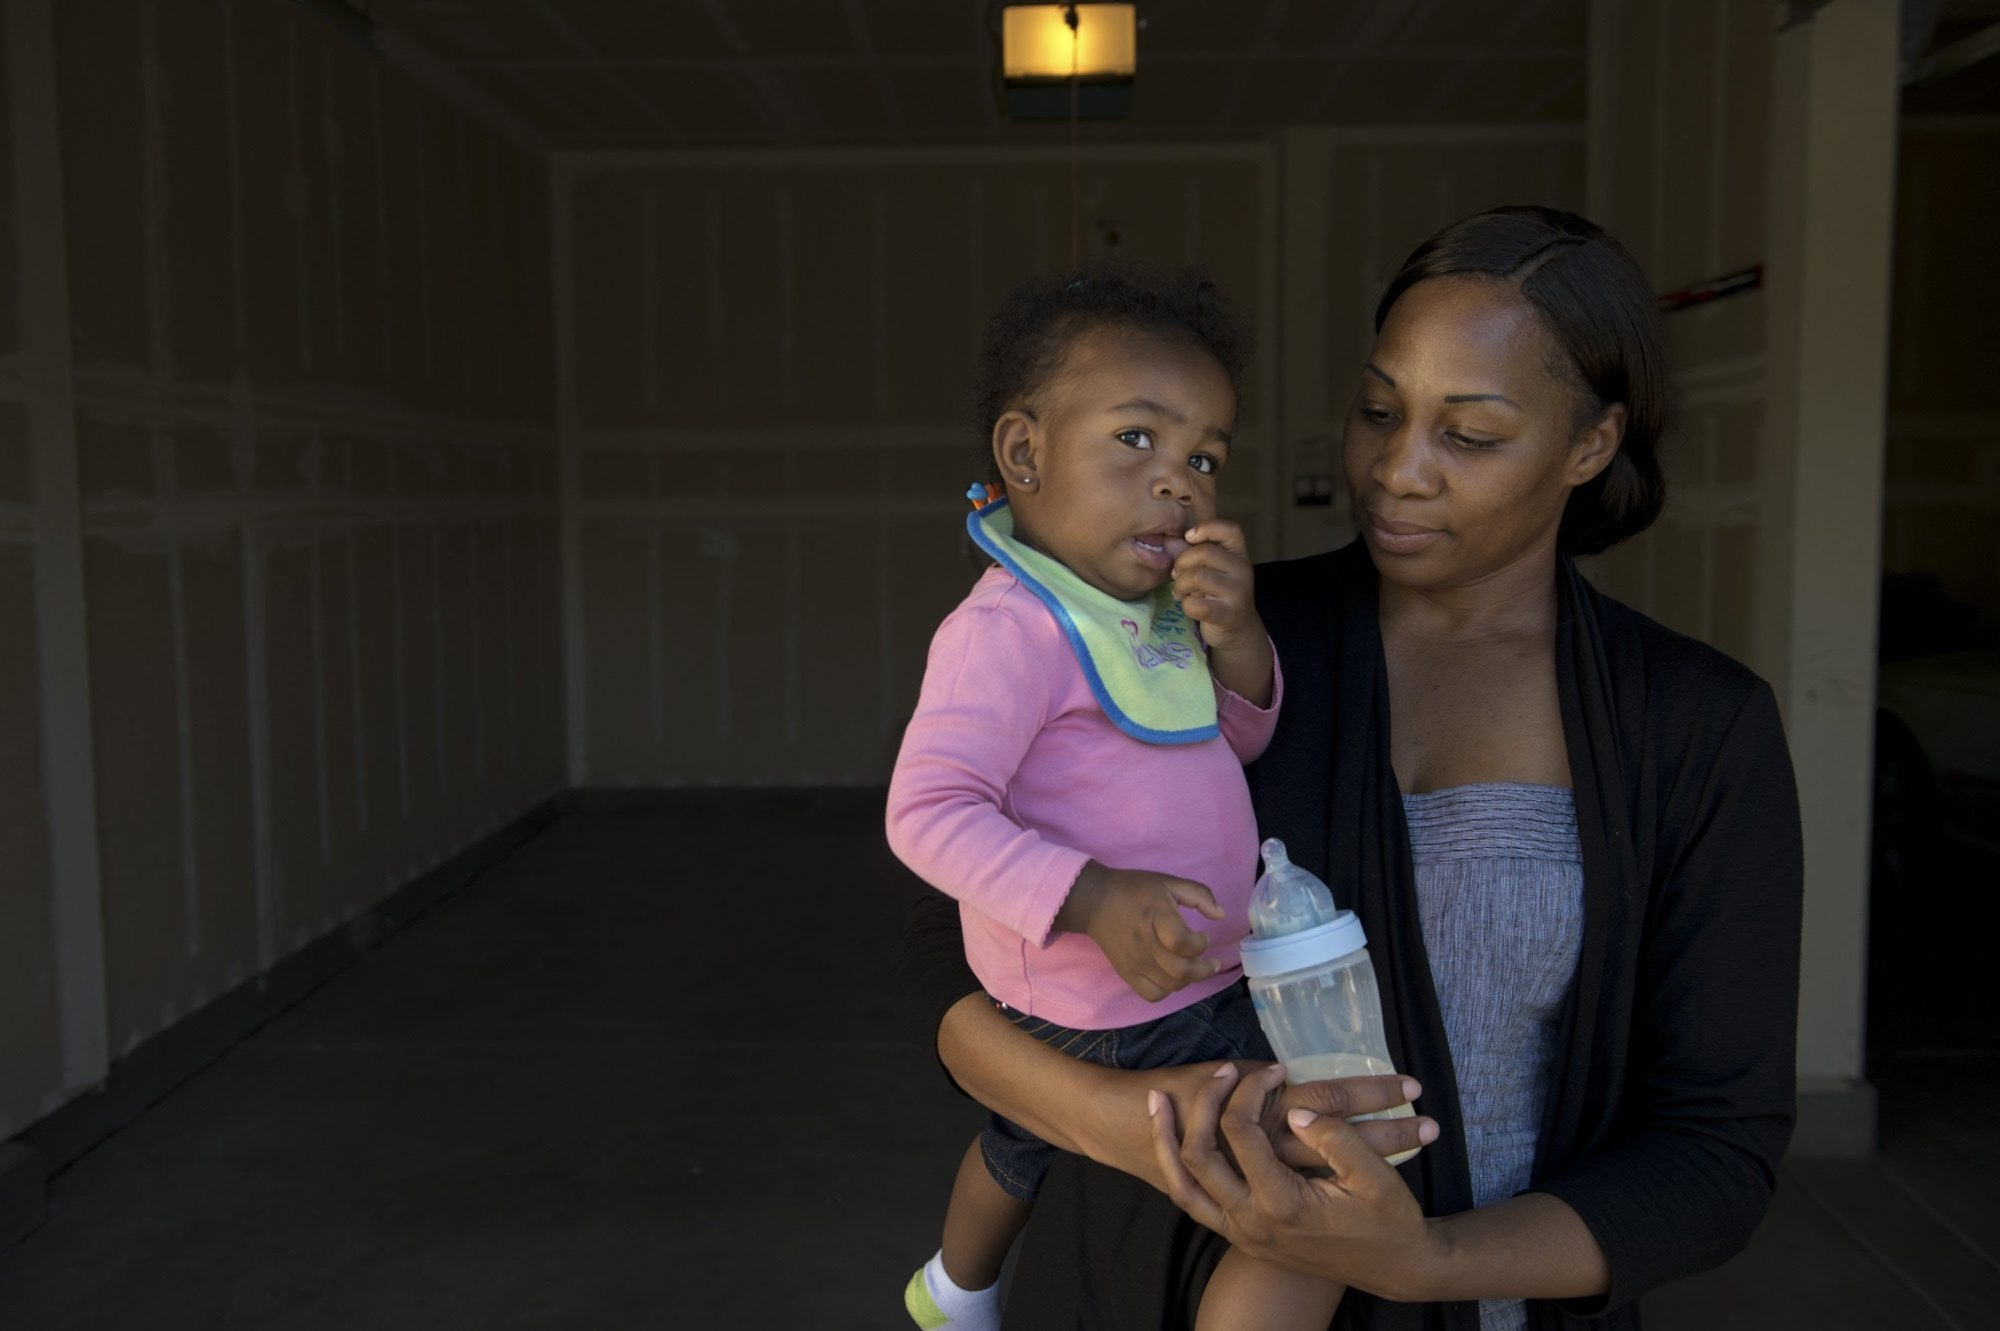 Shanell White, a single mother with her 14-month-old daughter, Imani Ross, is faced with an empty garage at her home in Elk Grove, Calif. She is a plaintiff in a class-action lawsuit against auto-title lenders.